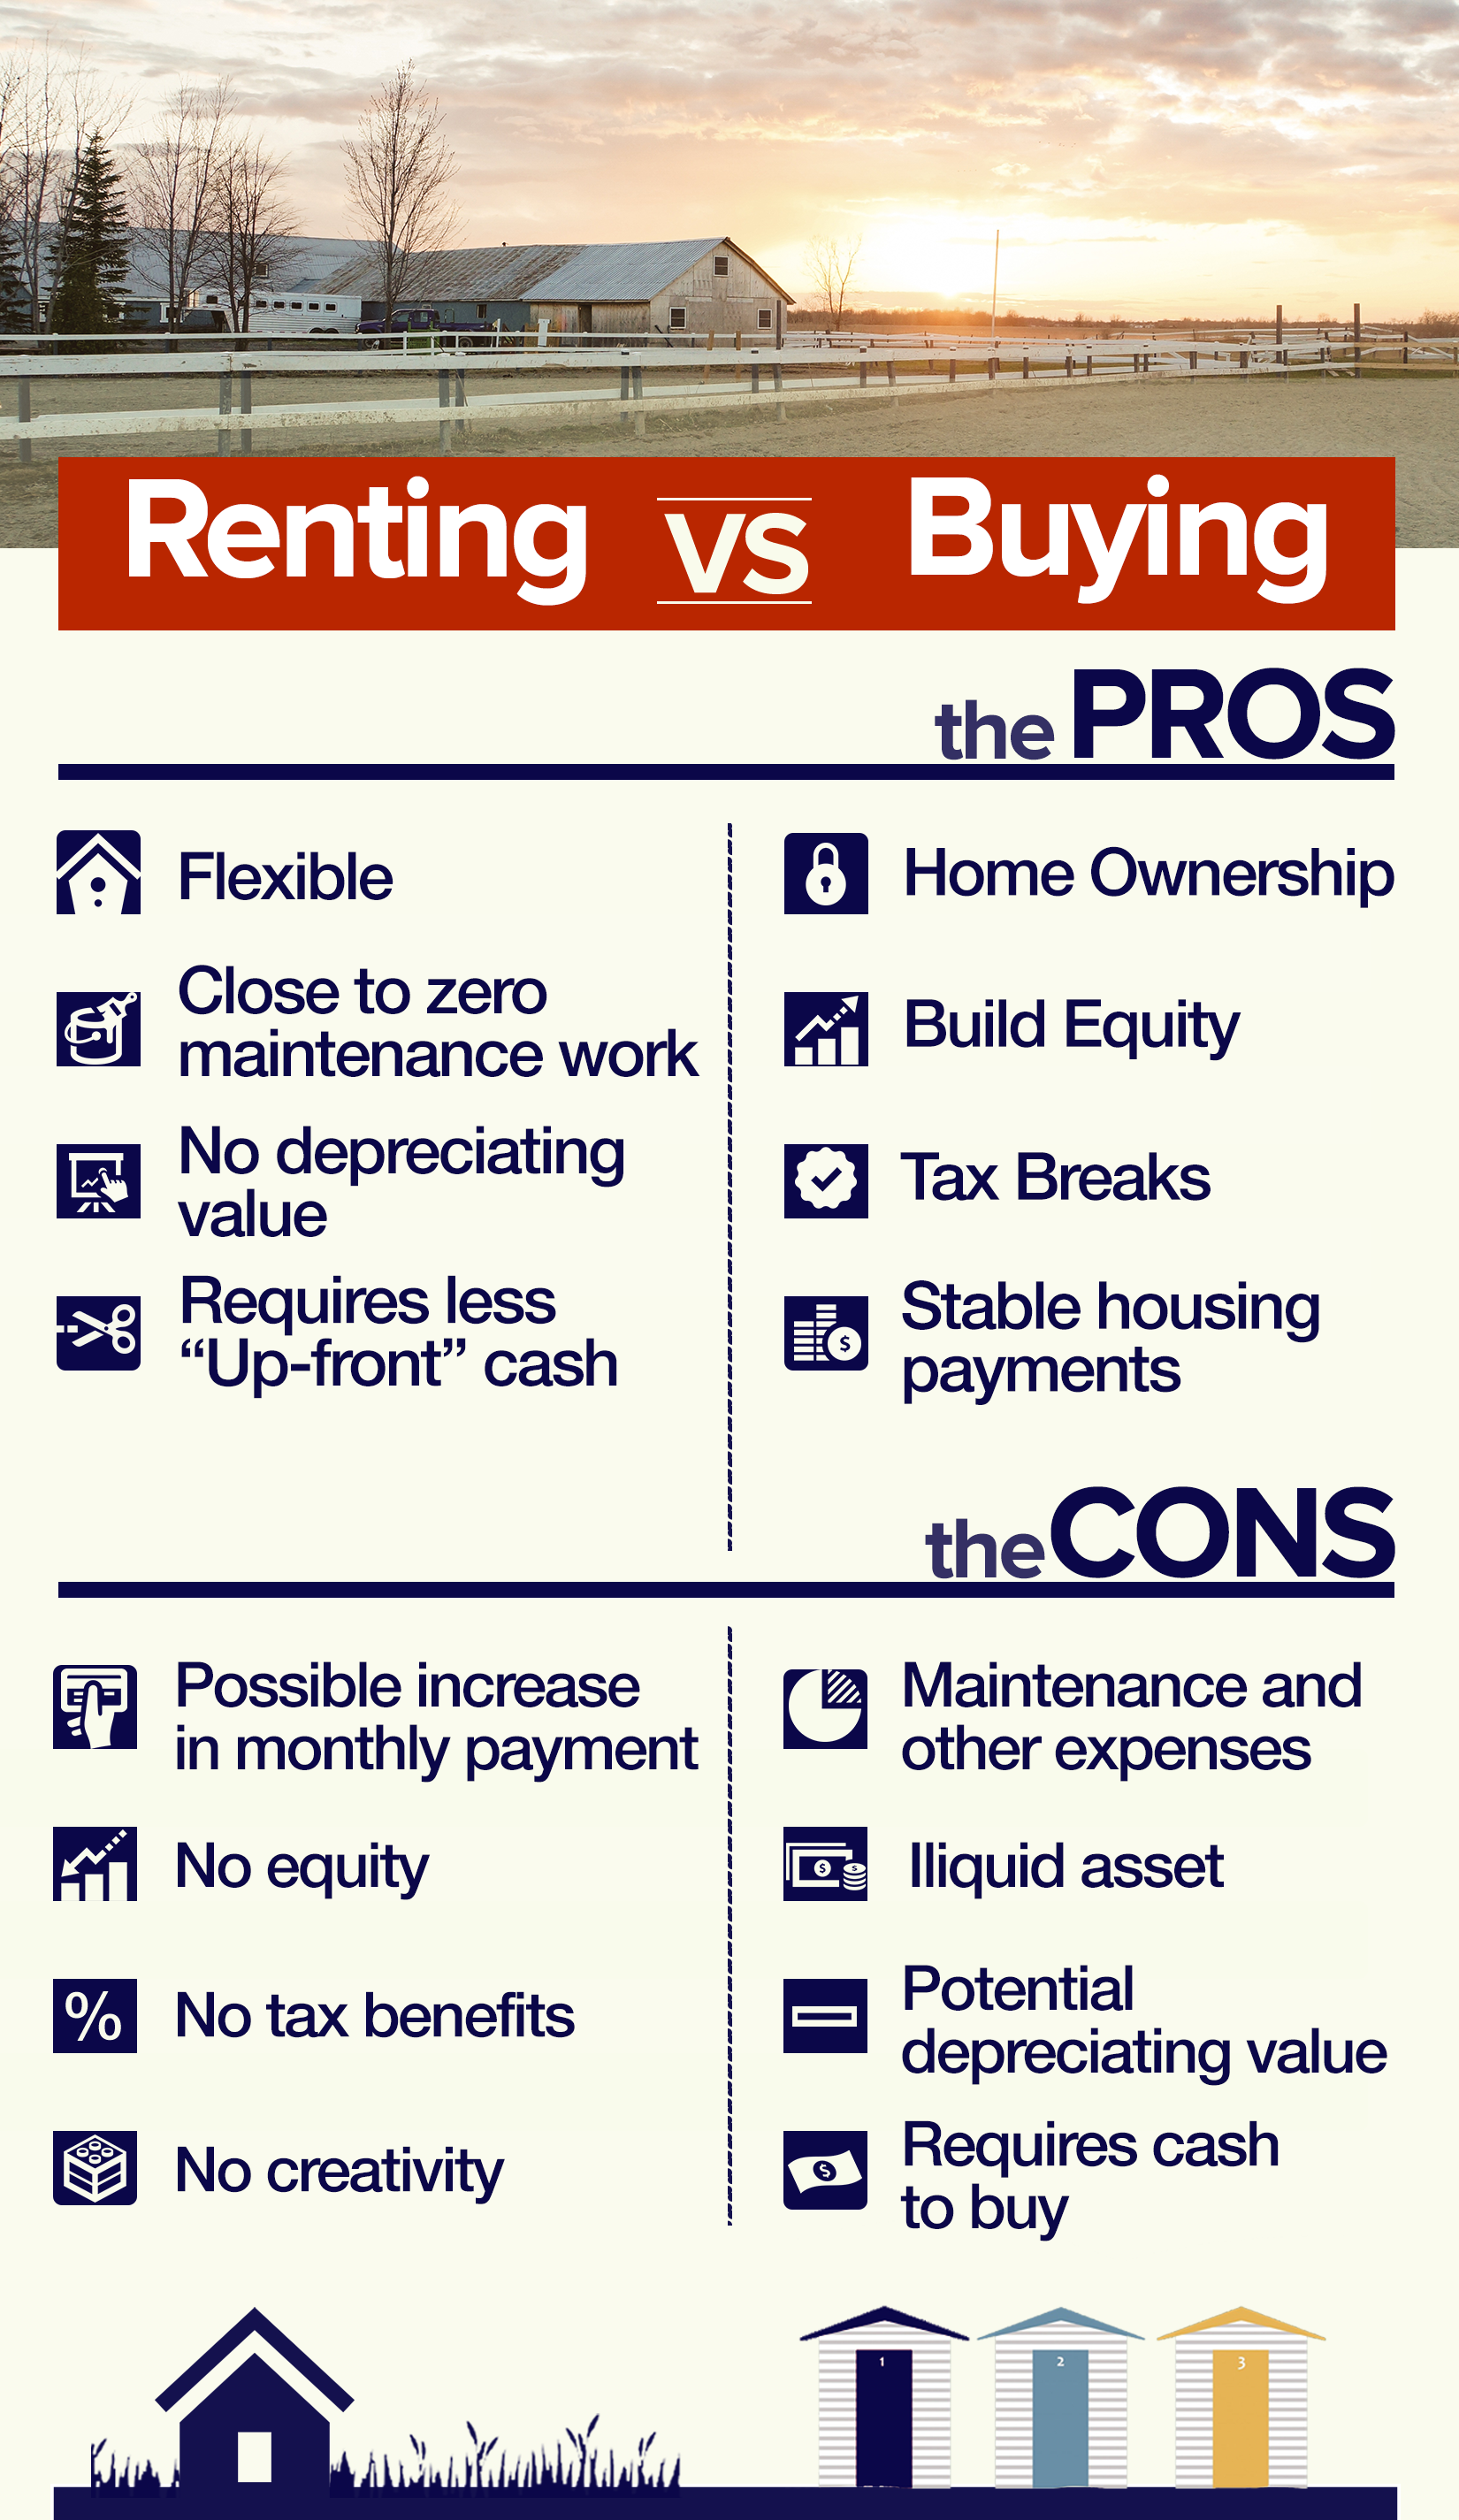 Buying A House Vs Renting Sell My House To Smith Rent Vs Buy Renting Vs Buying Home Real Estate Investing Rental Property